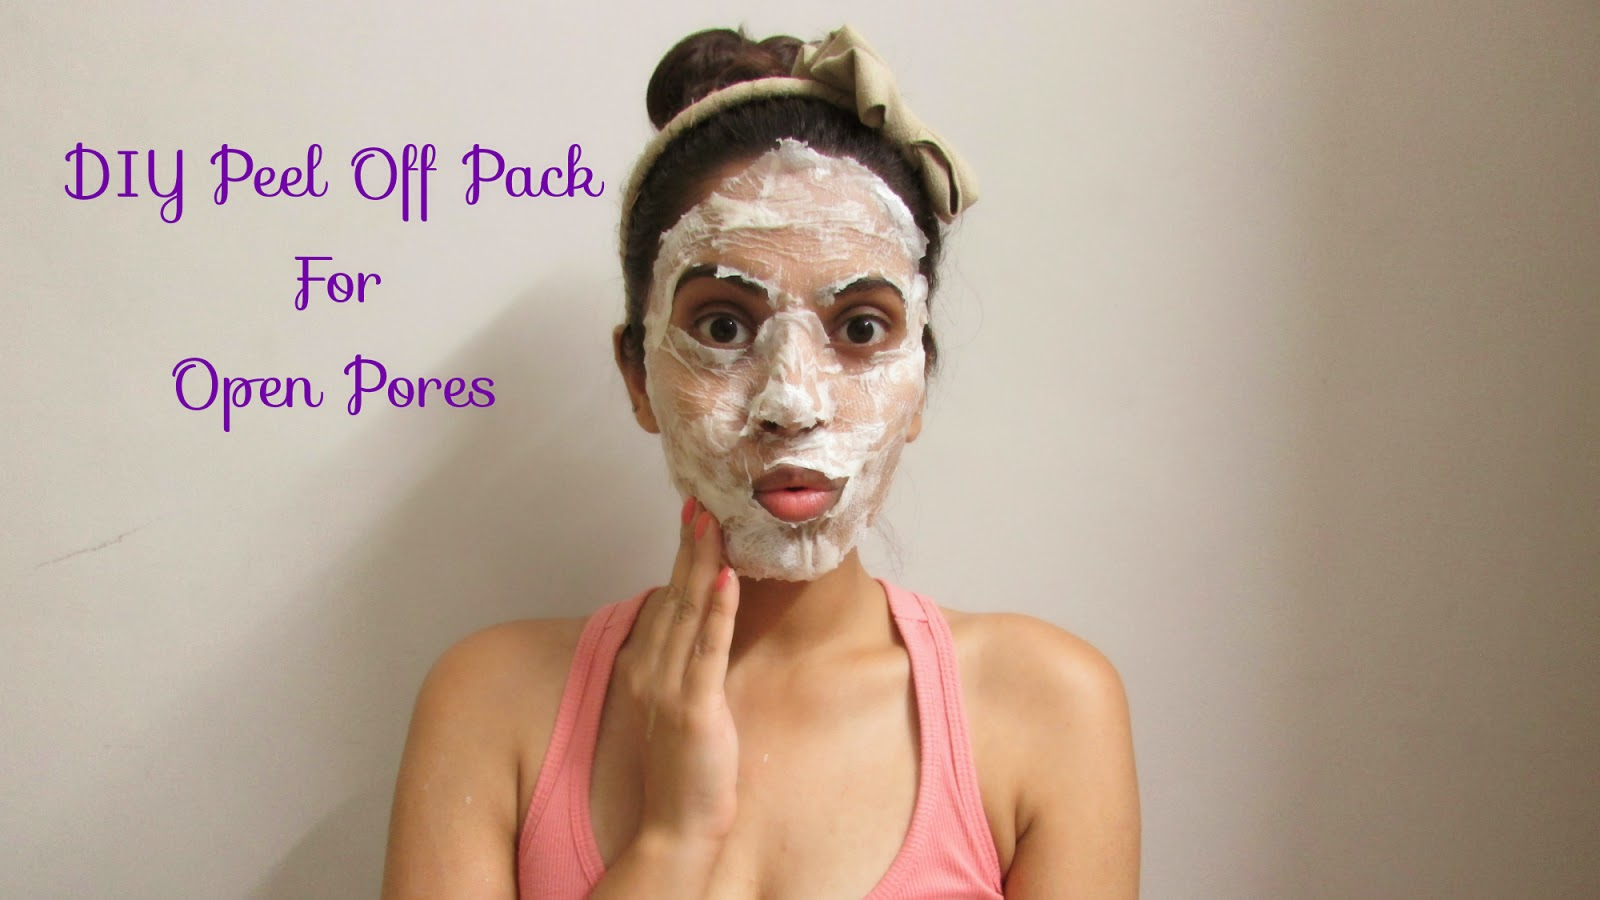 DIY, DIY peel off pack, DIY peel off pack for open pores, egg face pack, egg peel off pack, home remedies for open pores, home-remedies, beauty , fashion,beauty and fashion,beauty blog, fashion blog , indian beauty blog,indian fashion blog, beauty and fashion blog, indian beauty and fashion blog, indian bloggers, indian beauty bloggers, indian fashion bloggers,indian bloggers online, top 10 indian bloggers, top indian bloggers,top 10 fashion bloggers, indian bloggers on blogspot,home remedies, how to